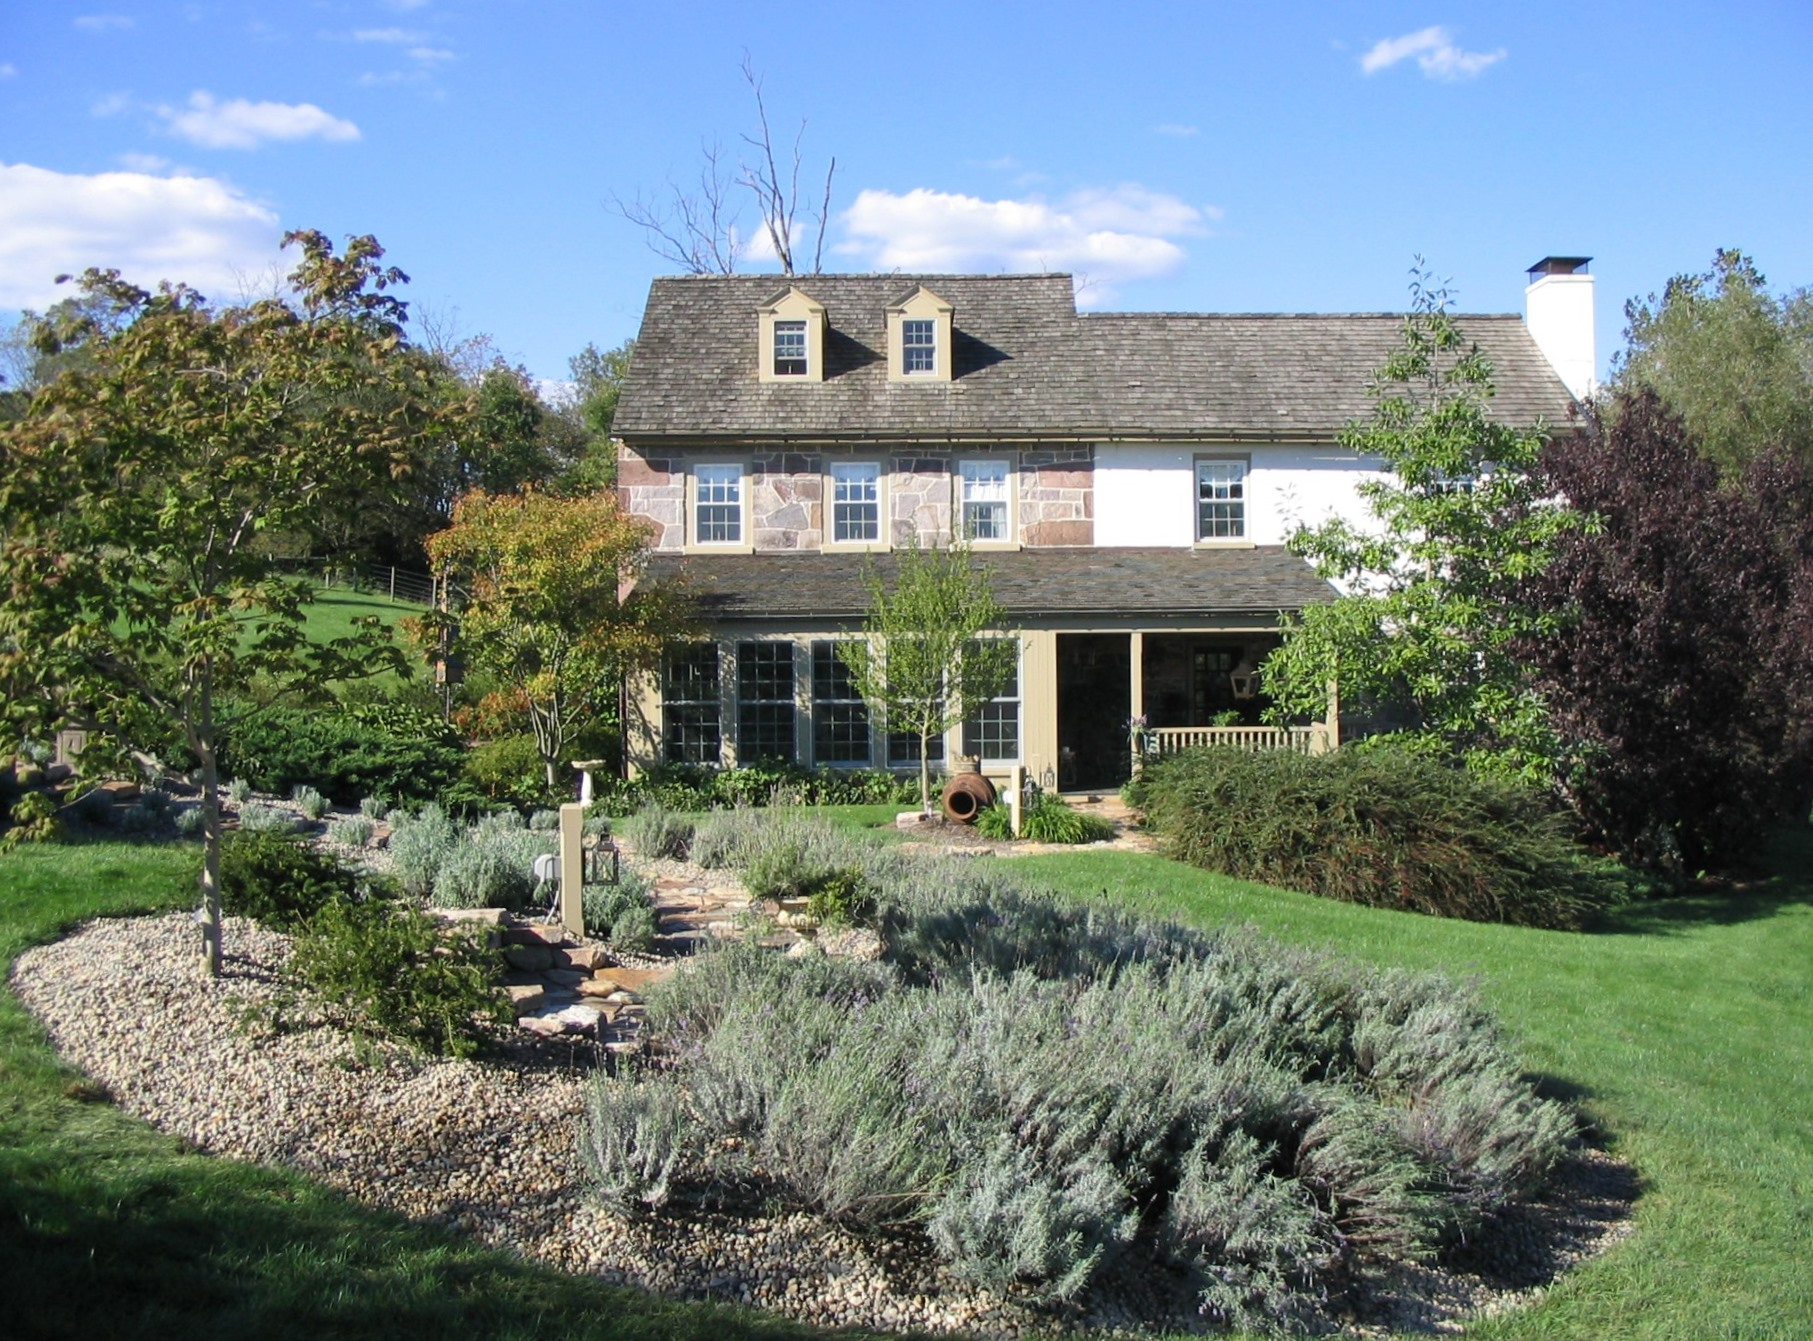 Mediterranean-inspired herb garden and rustic stone paths complement farmhouse landscape, Morgantown, PA